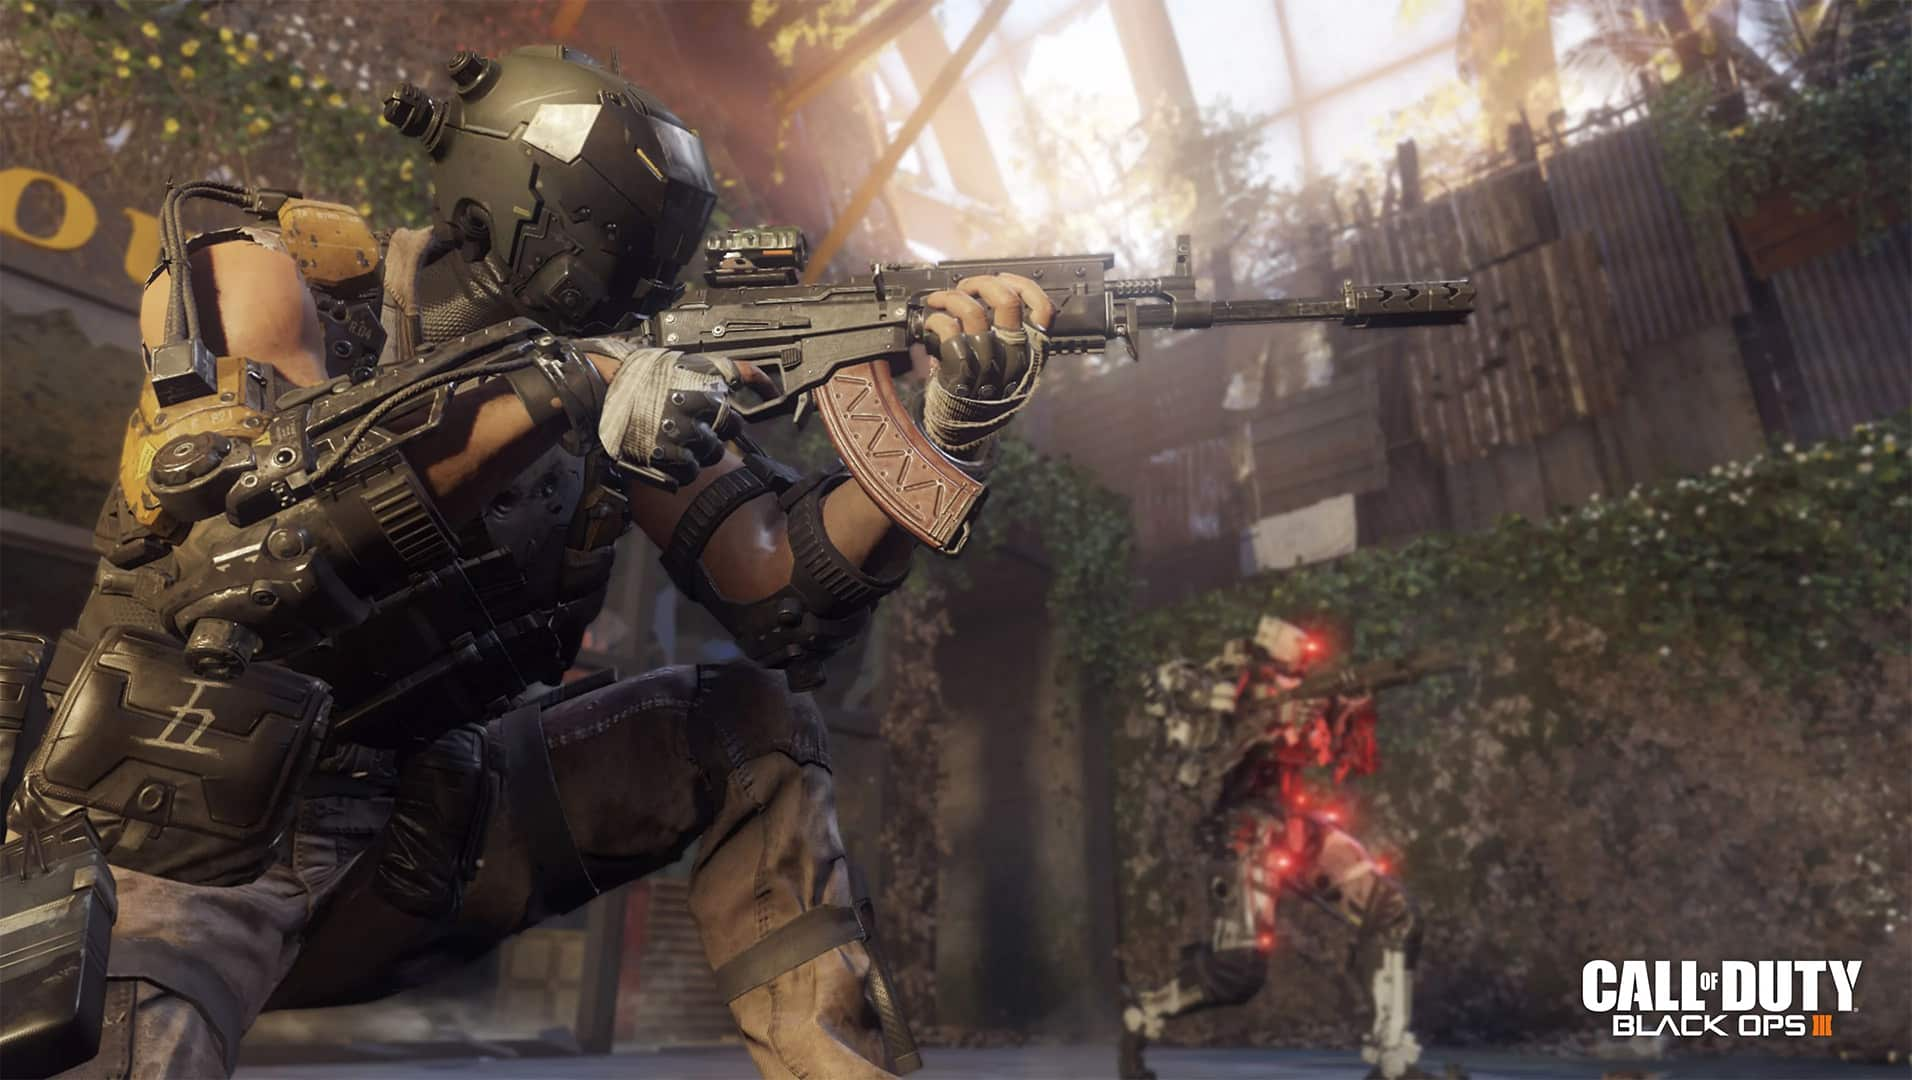 Activision Treyarch Call of Duty: Black Ops III sci-fi conspiracy thriller with excellent story, gameplay mechanics